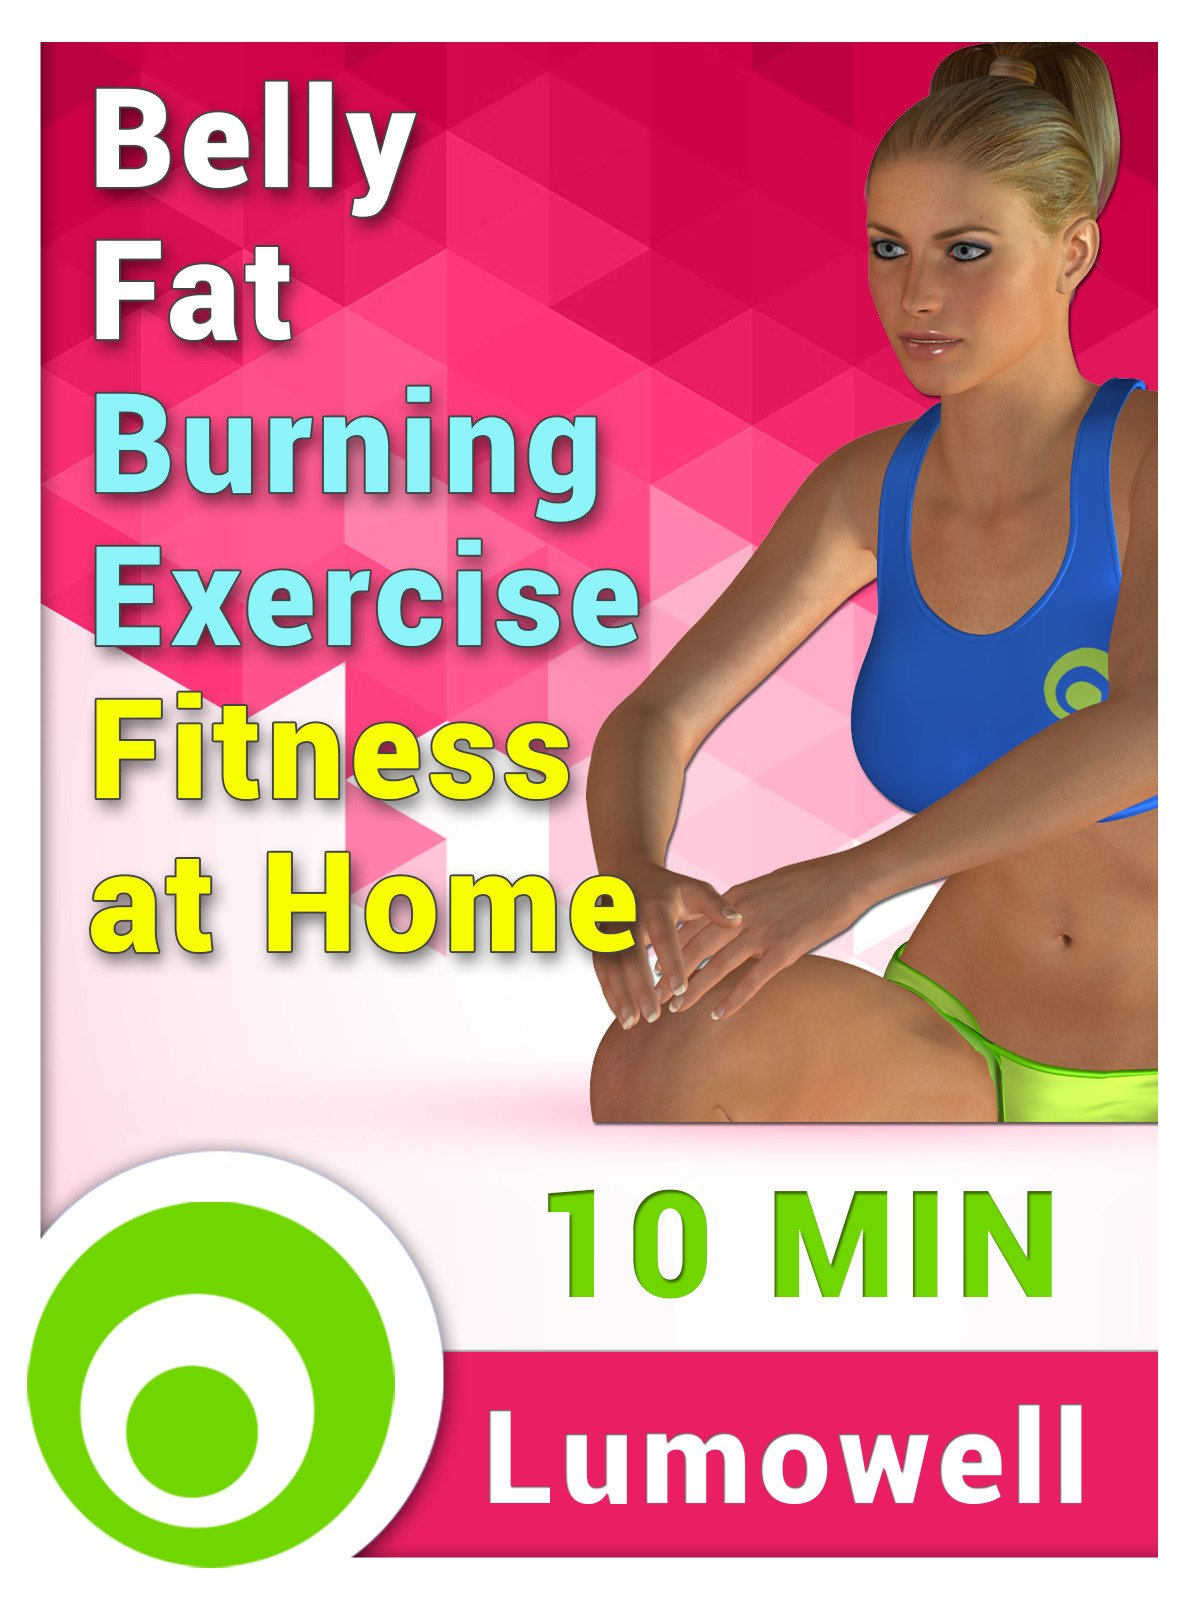 Belly Fat Burning Exercise